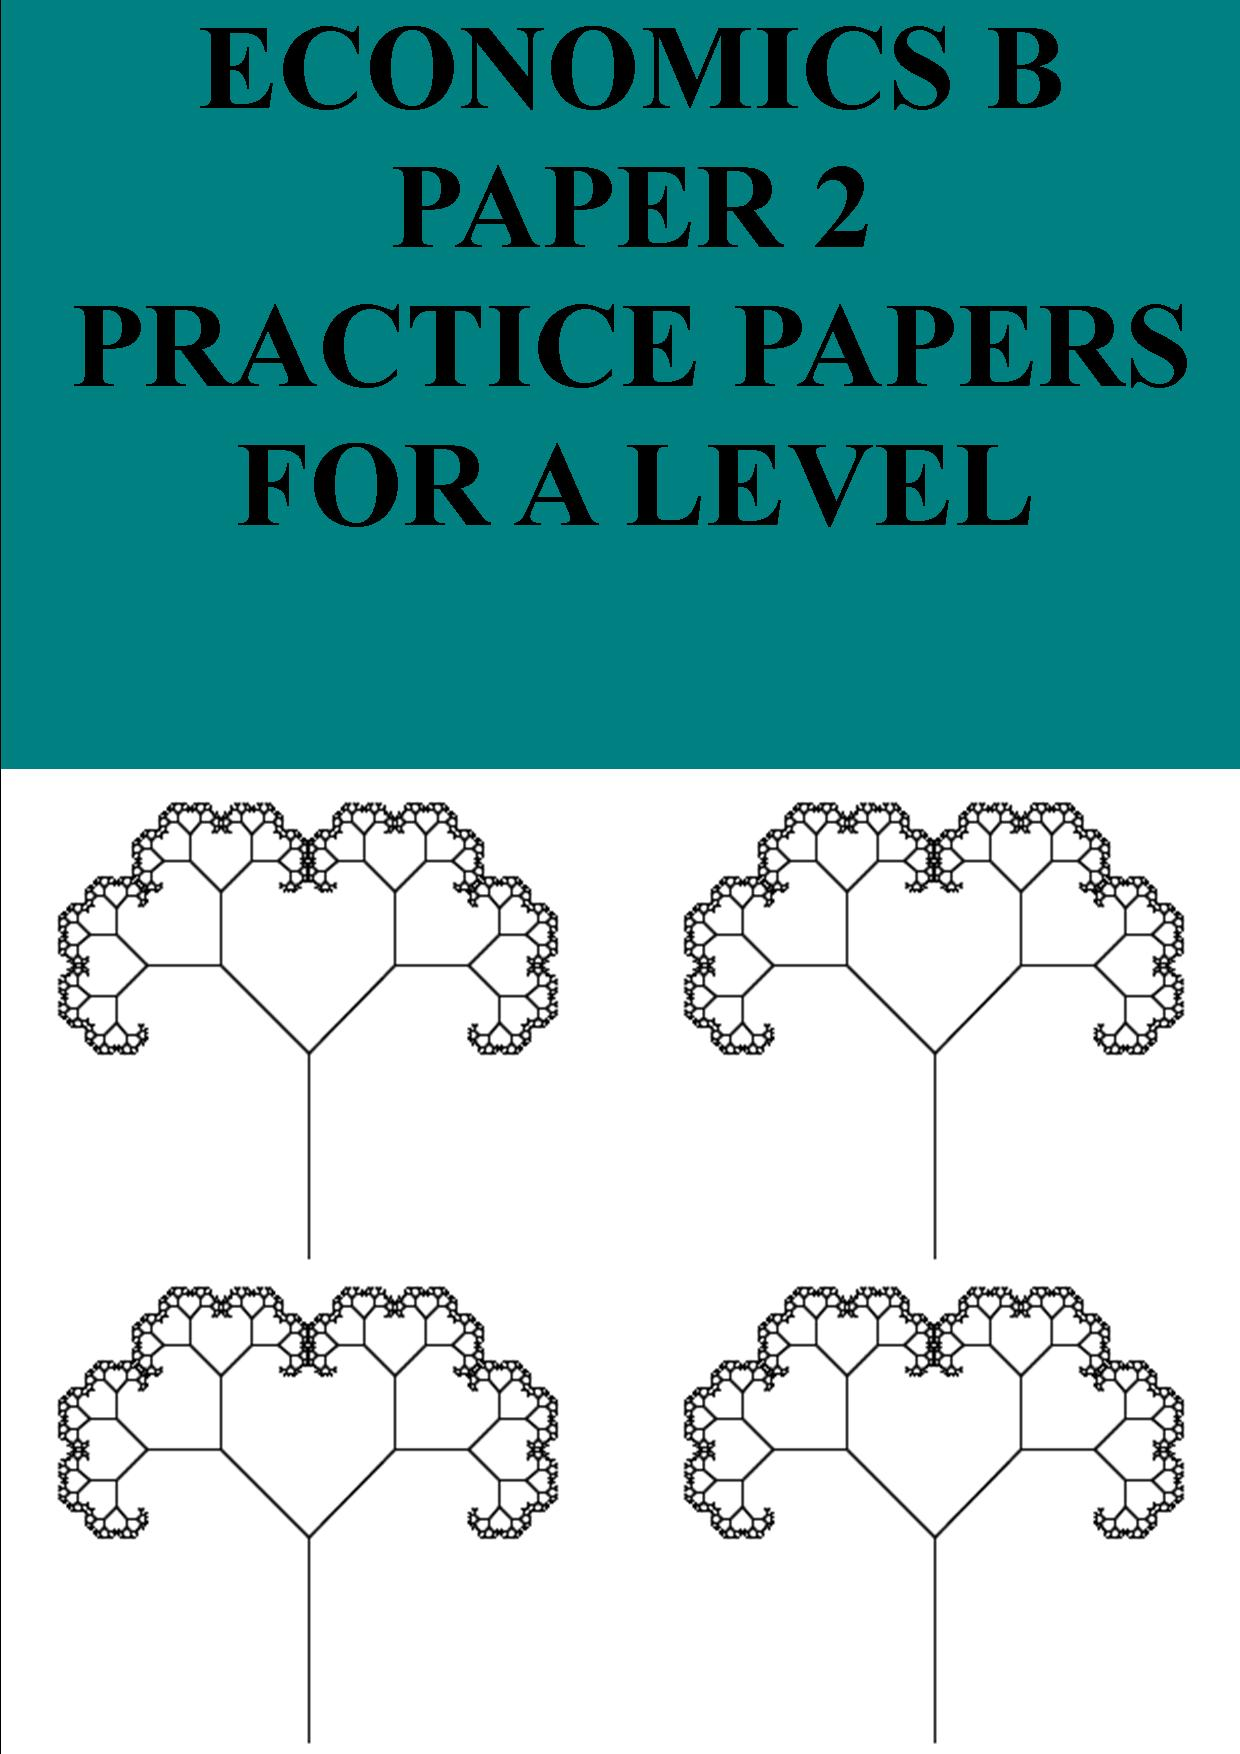 Paper 2 practice papers